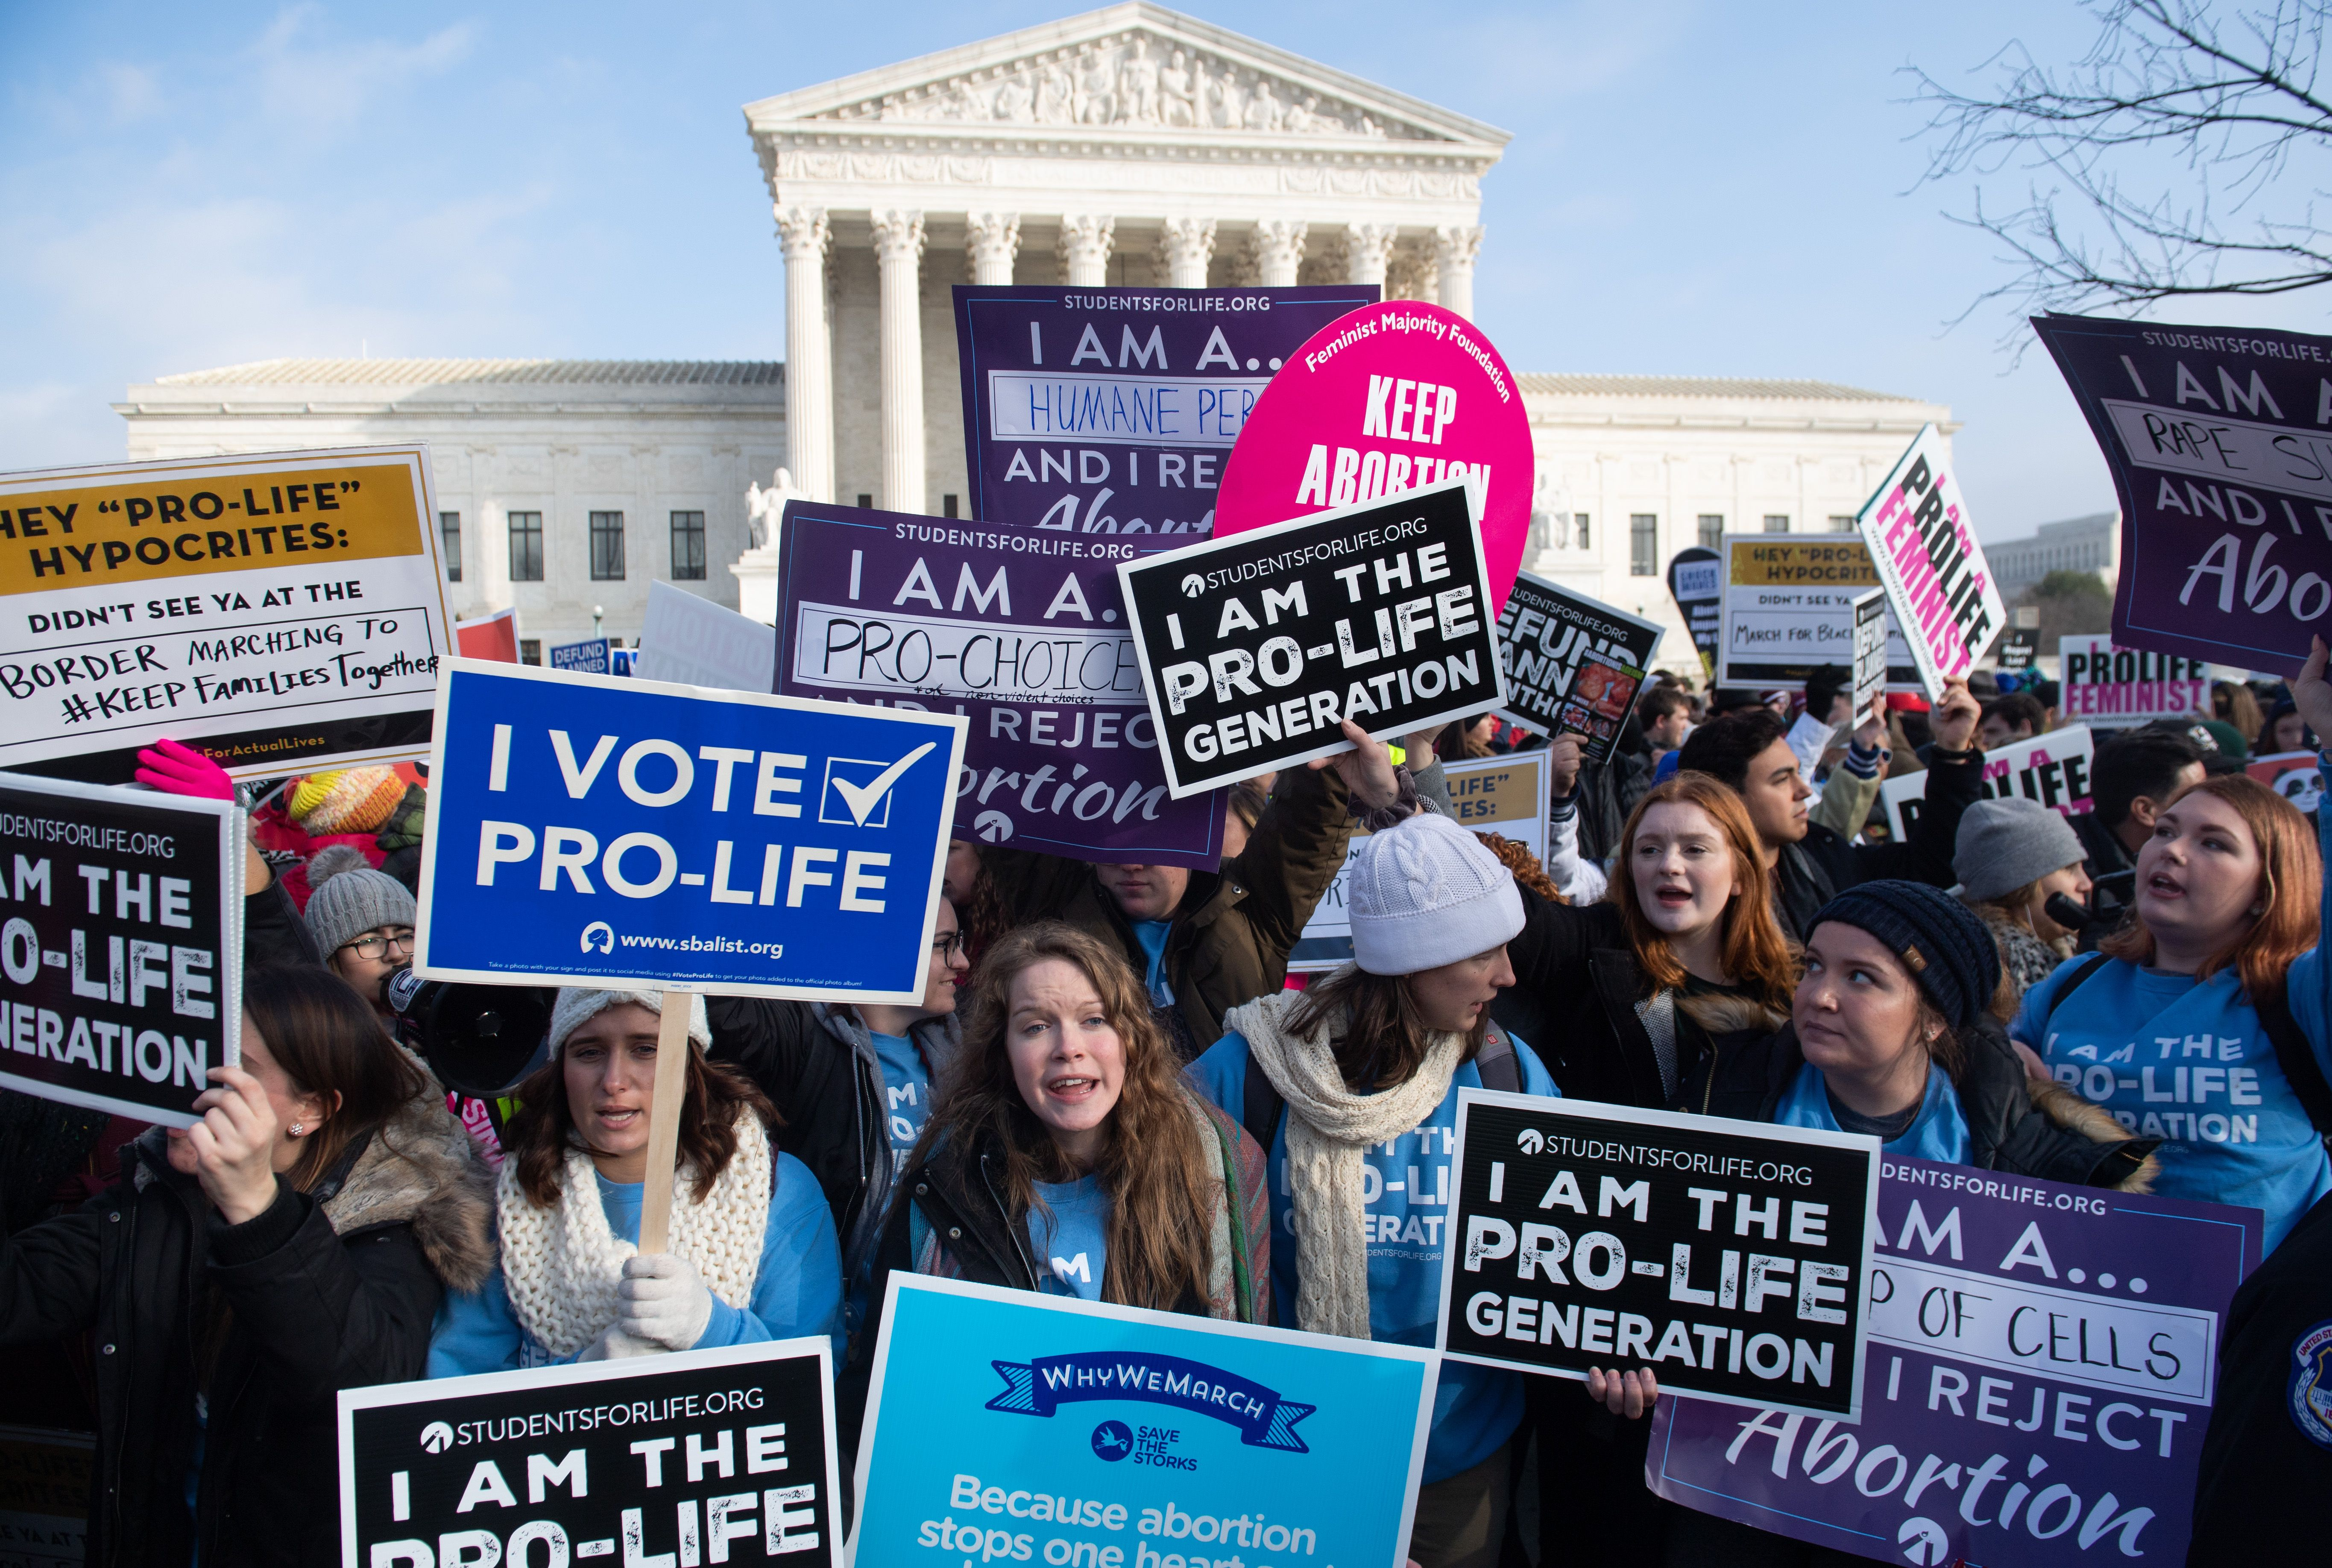 Activists on both sides of the abortion issue protest outside outside the US Supreme Court in Washington, DC, on January 18, 2019